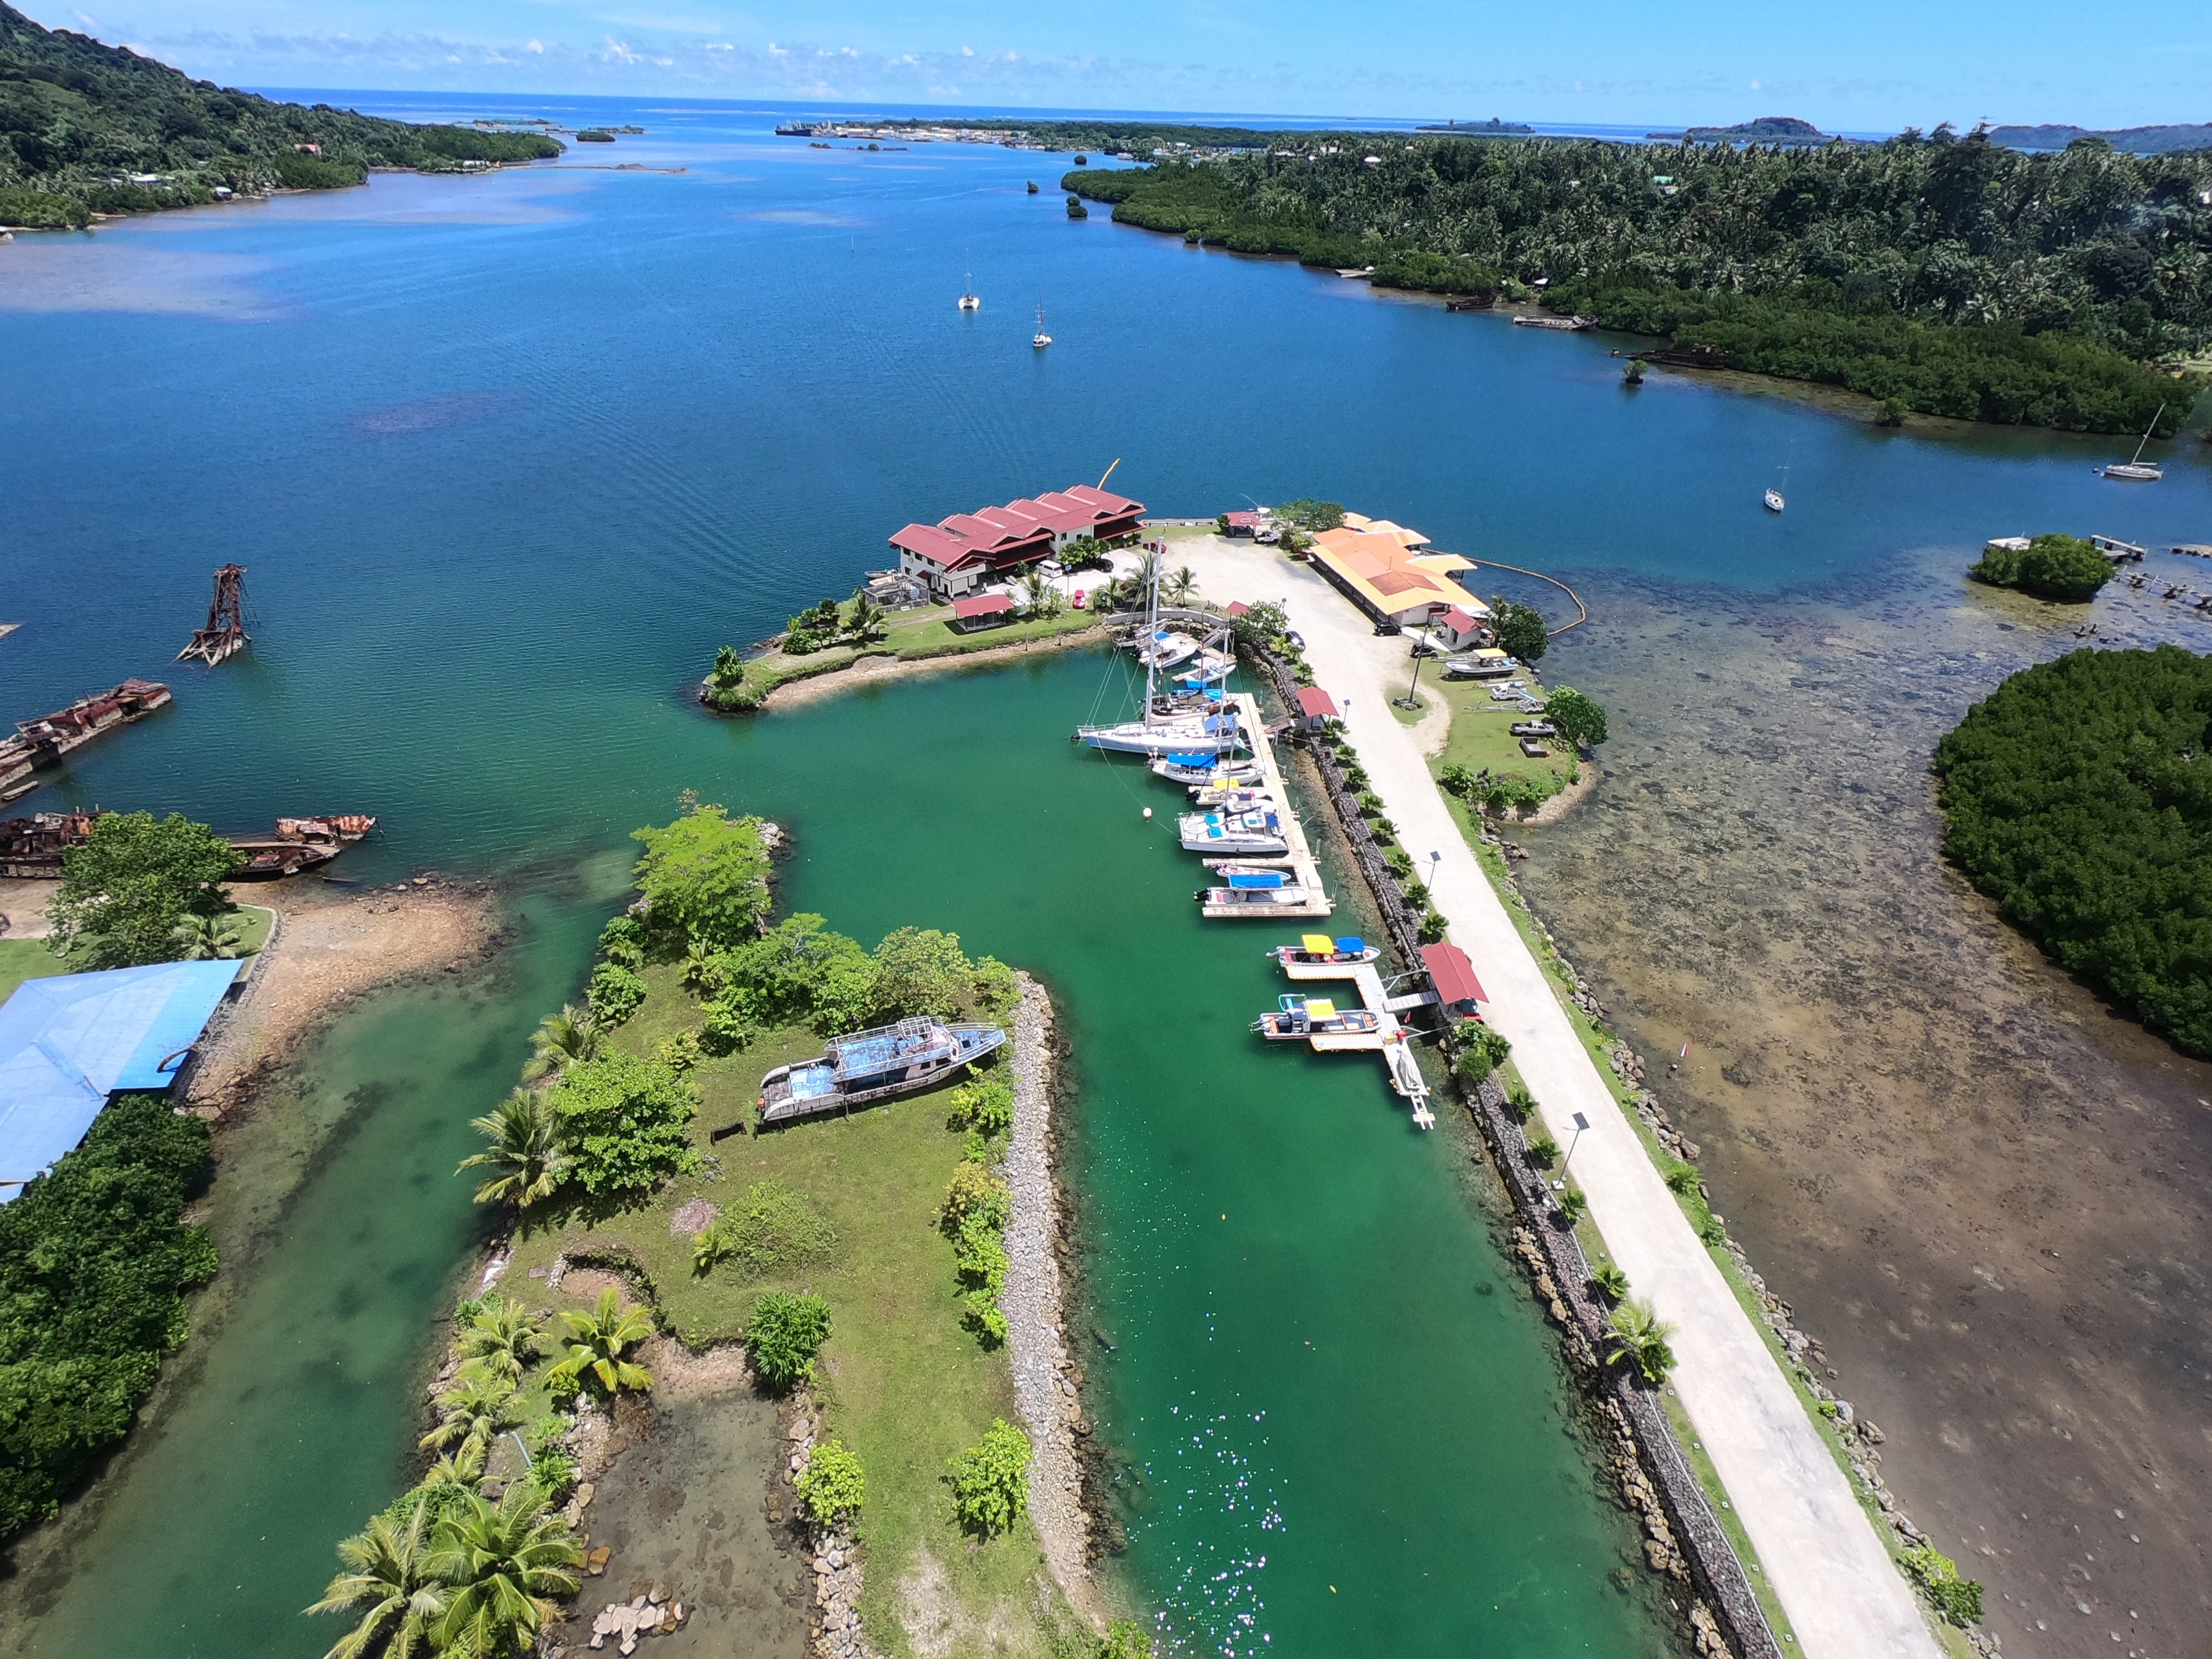 Mangrove Bay Hotel Yacht Docking offers